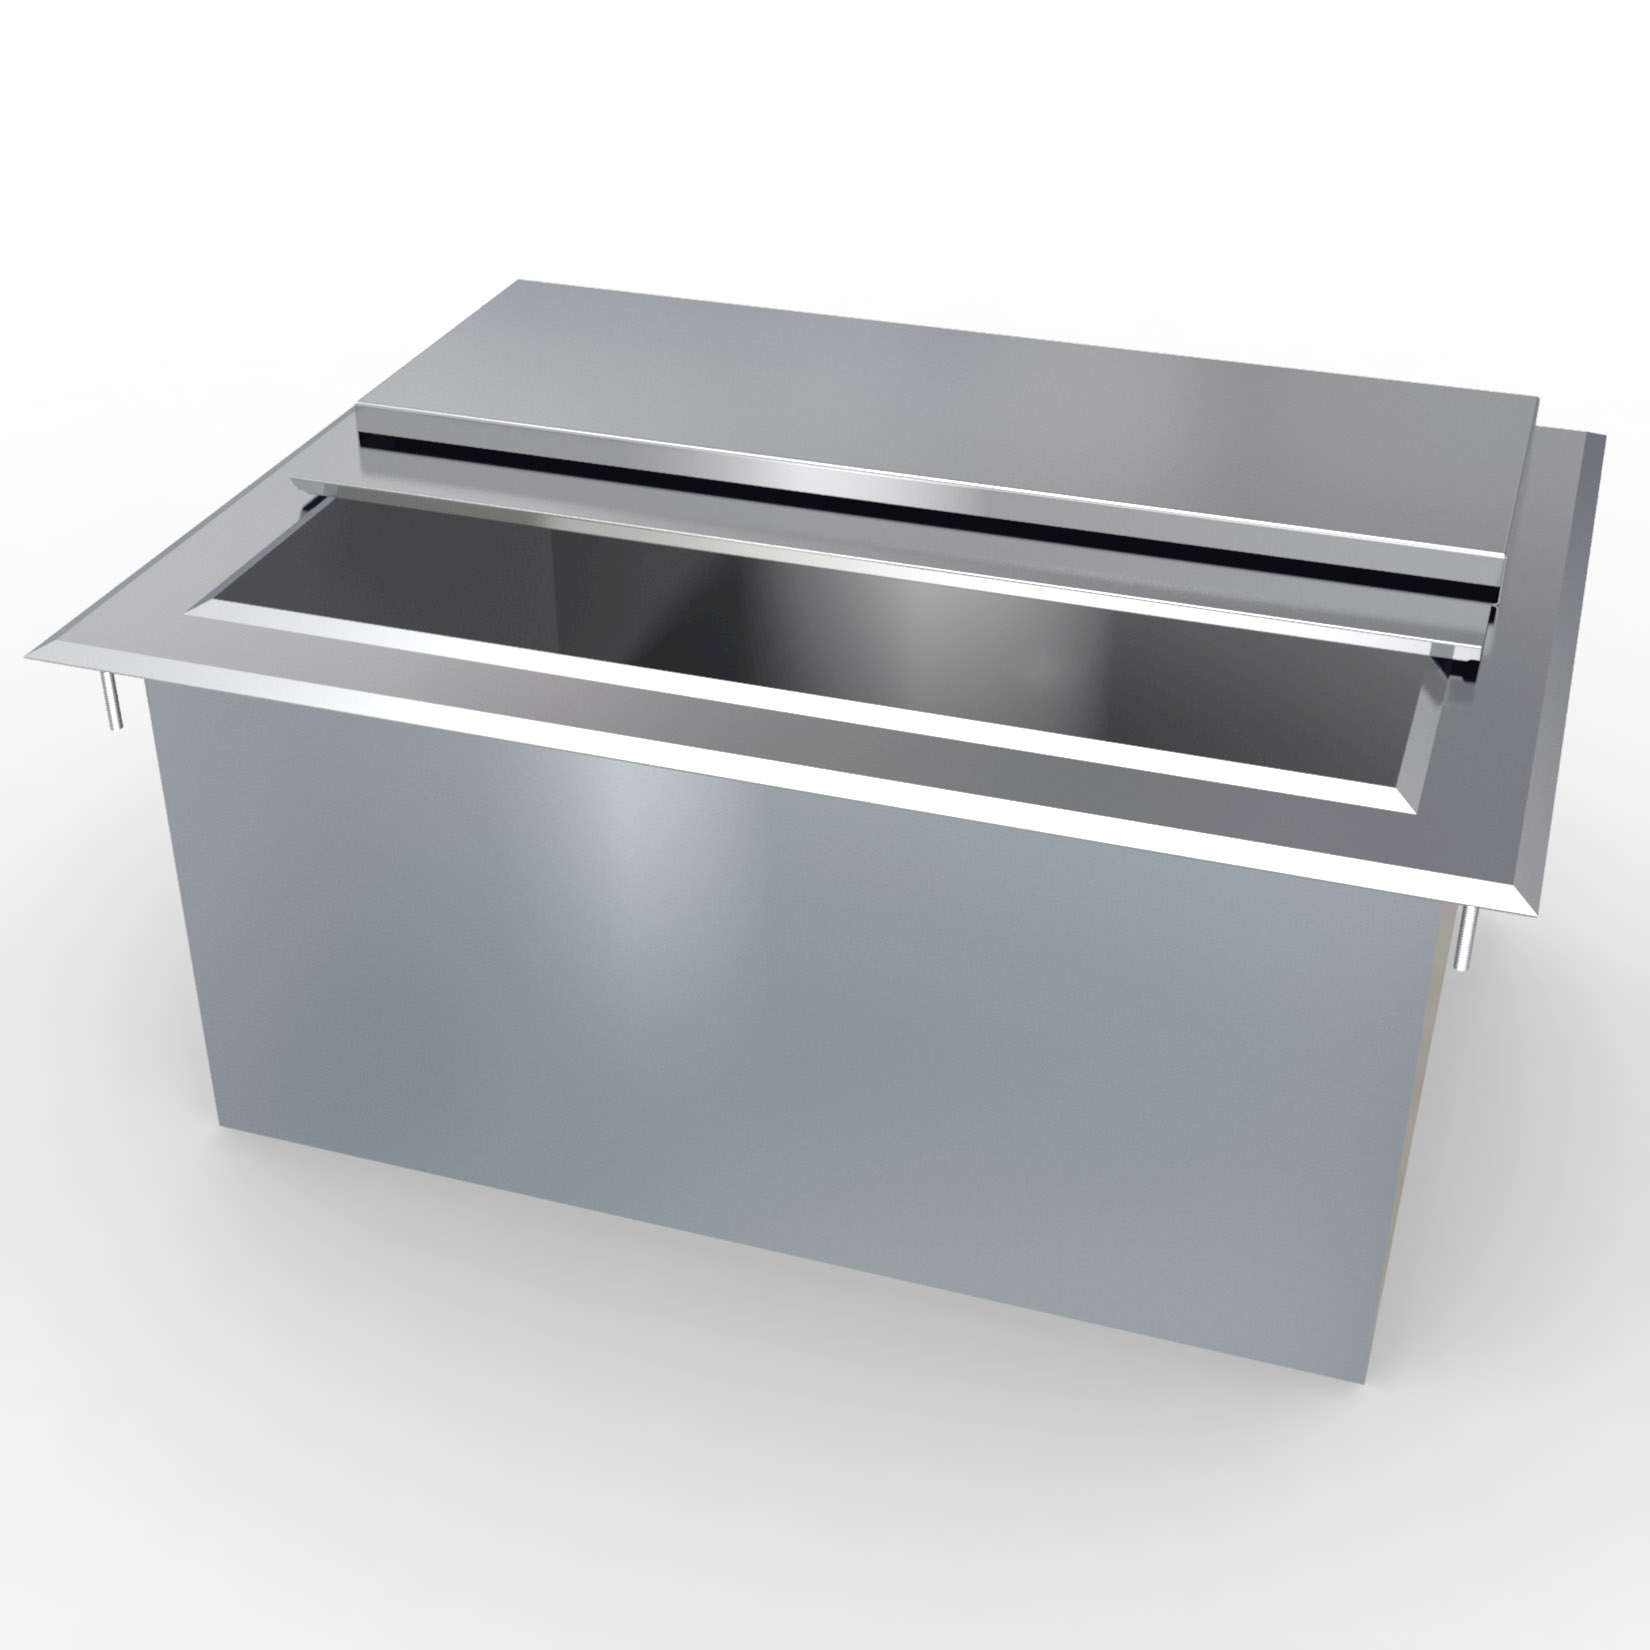 Lacrosse cooler di24ic drop in ice bin unit for Drop in cooler for outdoor kitchen